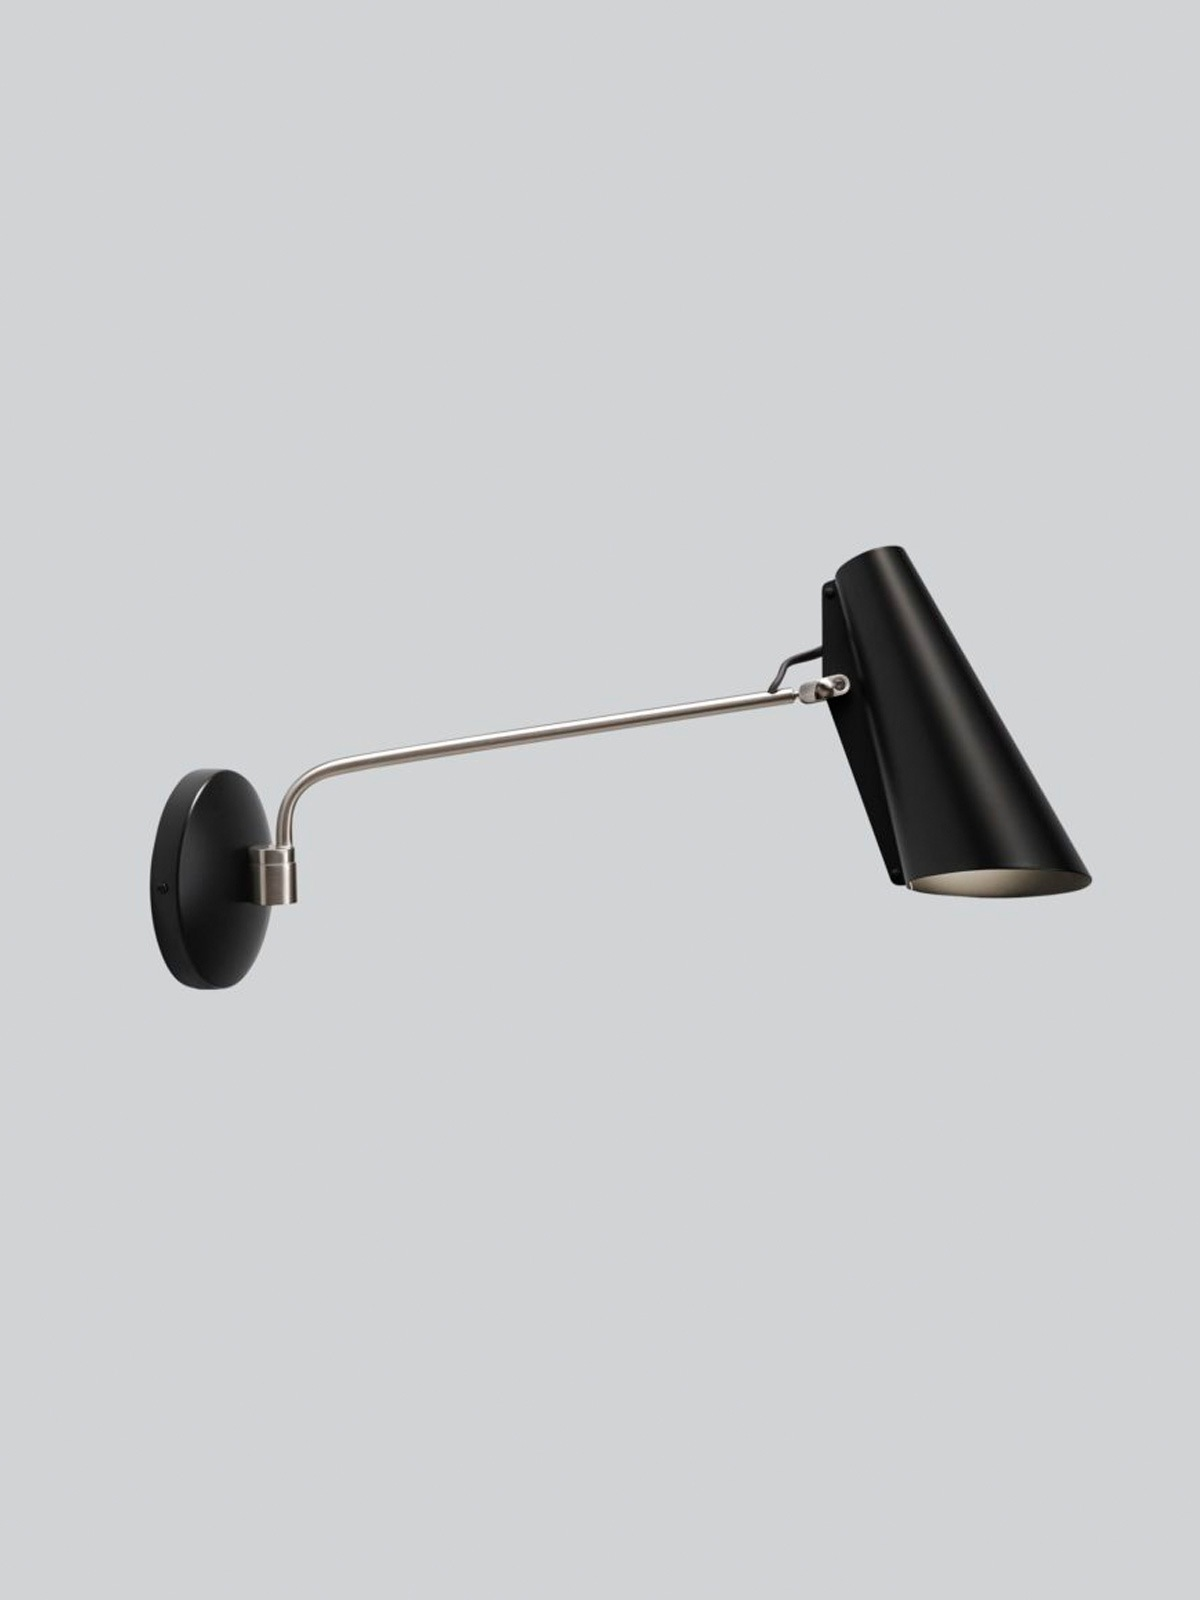 Birdy Wall Wandleuchte Northern Lighting DesignOrt Onlineshop Designerleuchten Berlin